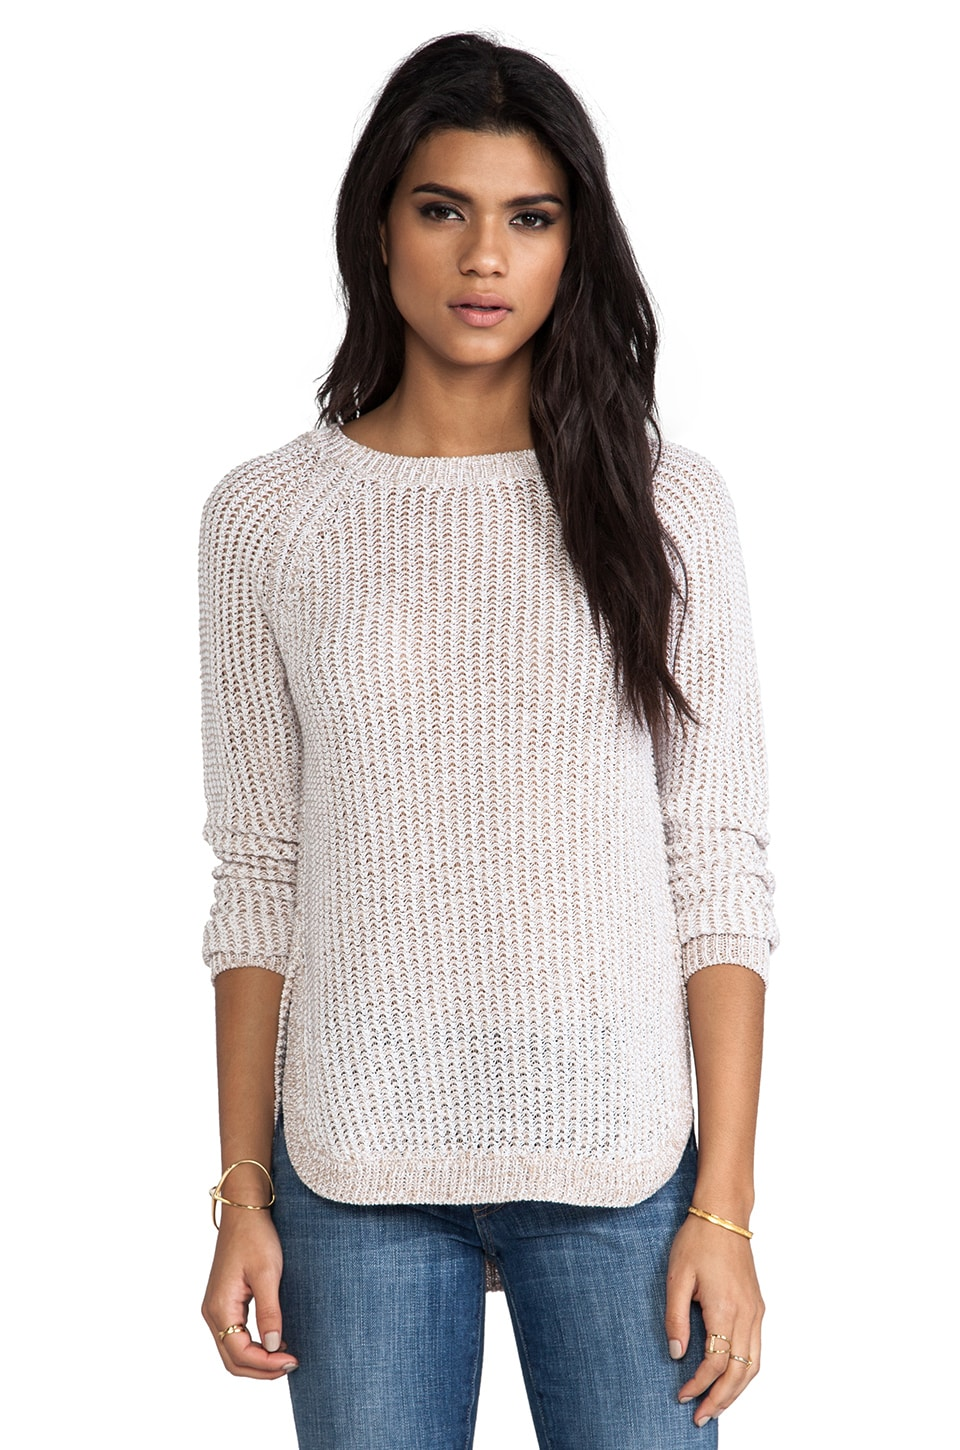 SHAE Stitchy Pullover in Flax White